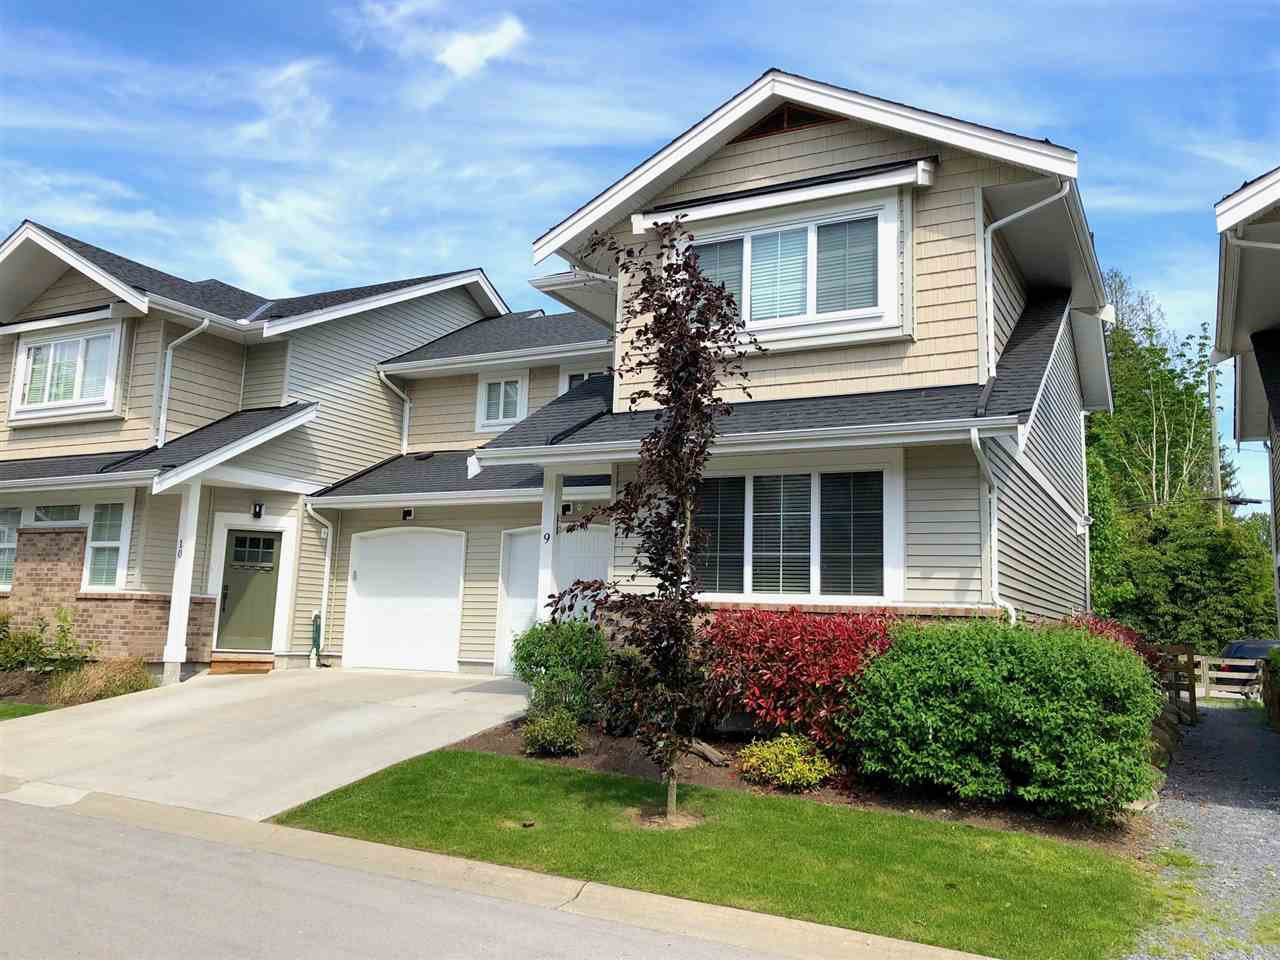 """Main Photo: 9 12161 237 Street in Maple Ridge: East Central Townhouse for sale in """"VILLAGE GREEN"""" : MLS®# R2370749"""